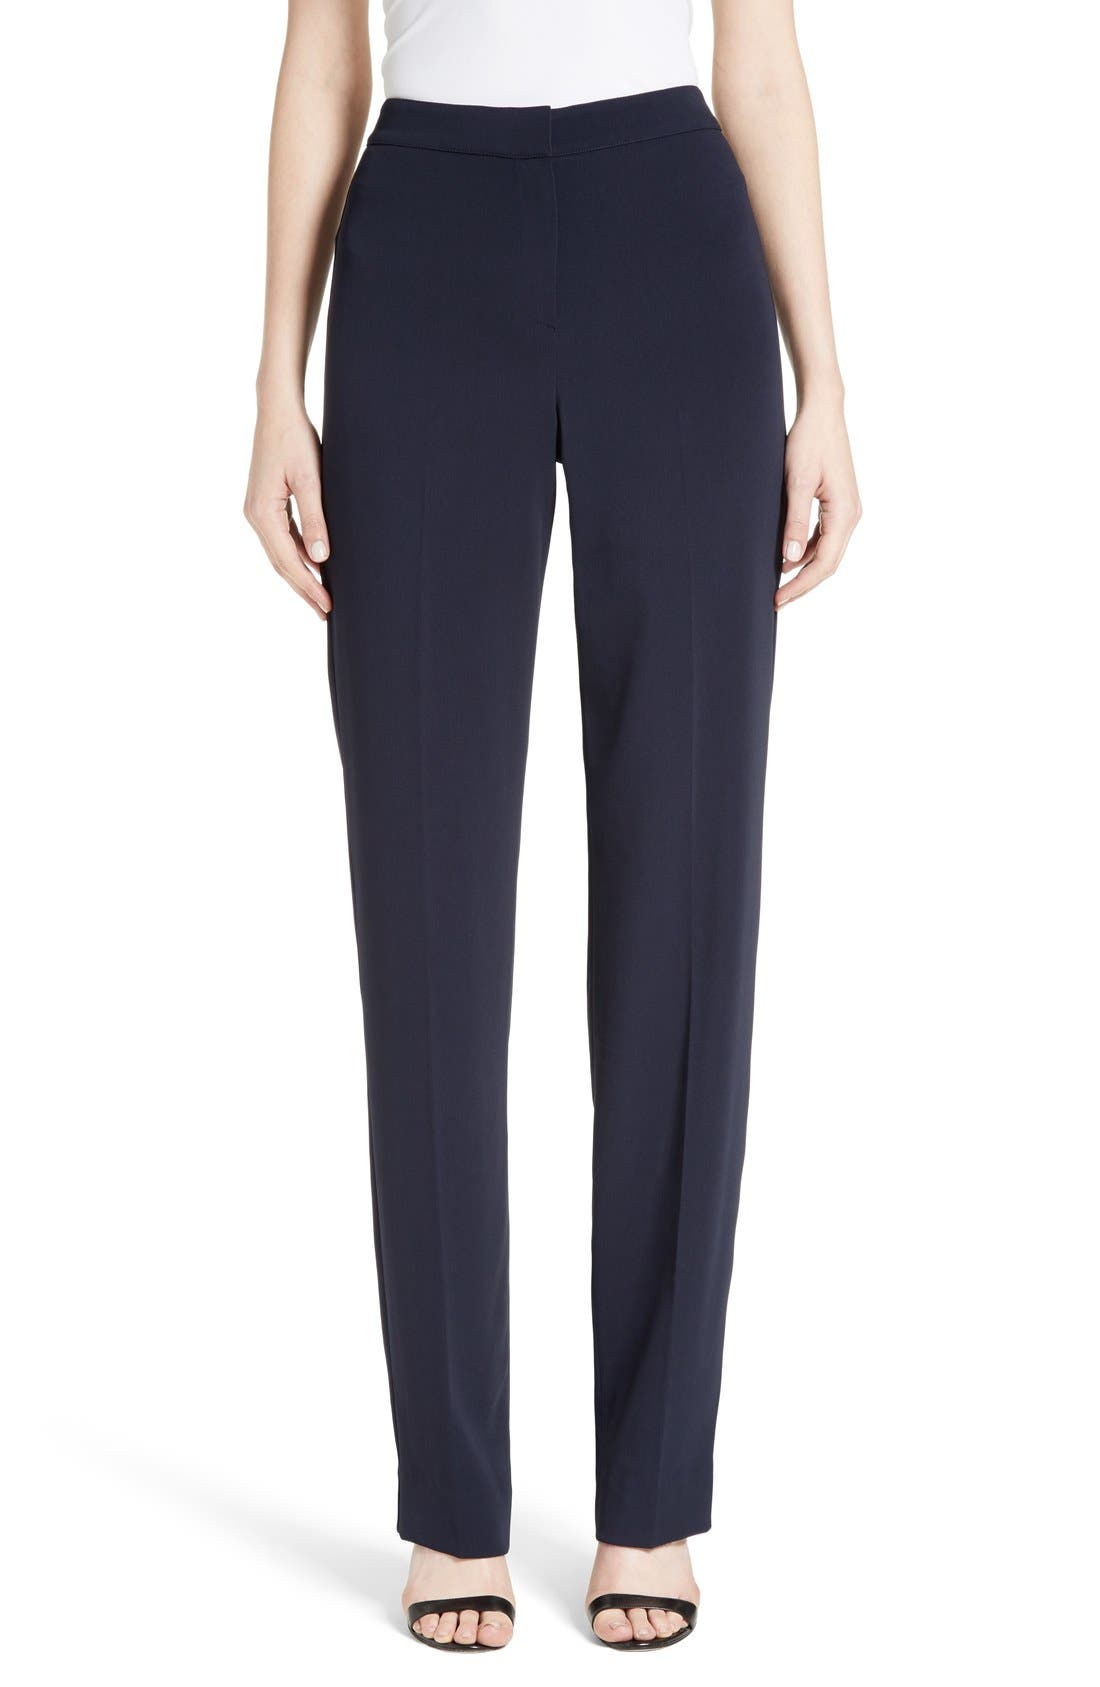 St. John Collection Diana Classic Cady Stretch Pants